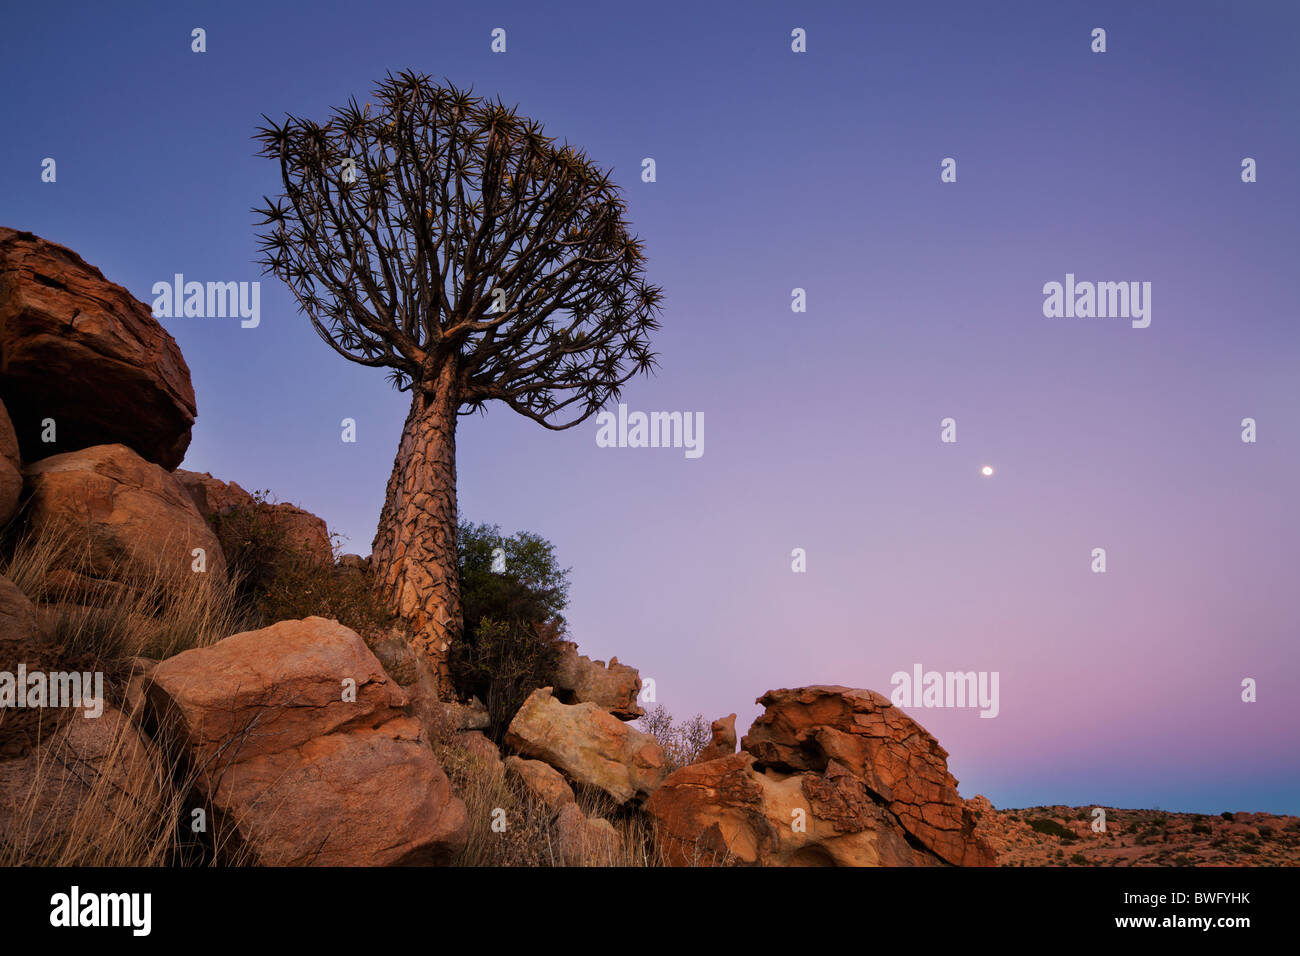 Wide view of a Quiver Tree at dawn with the moon rising in the sky. Richtersveld National Park, South Africa - Stock Image